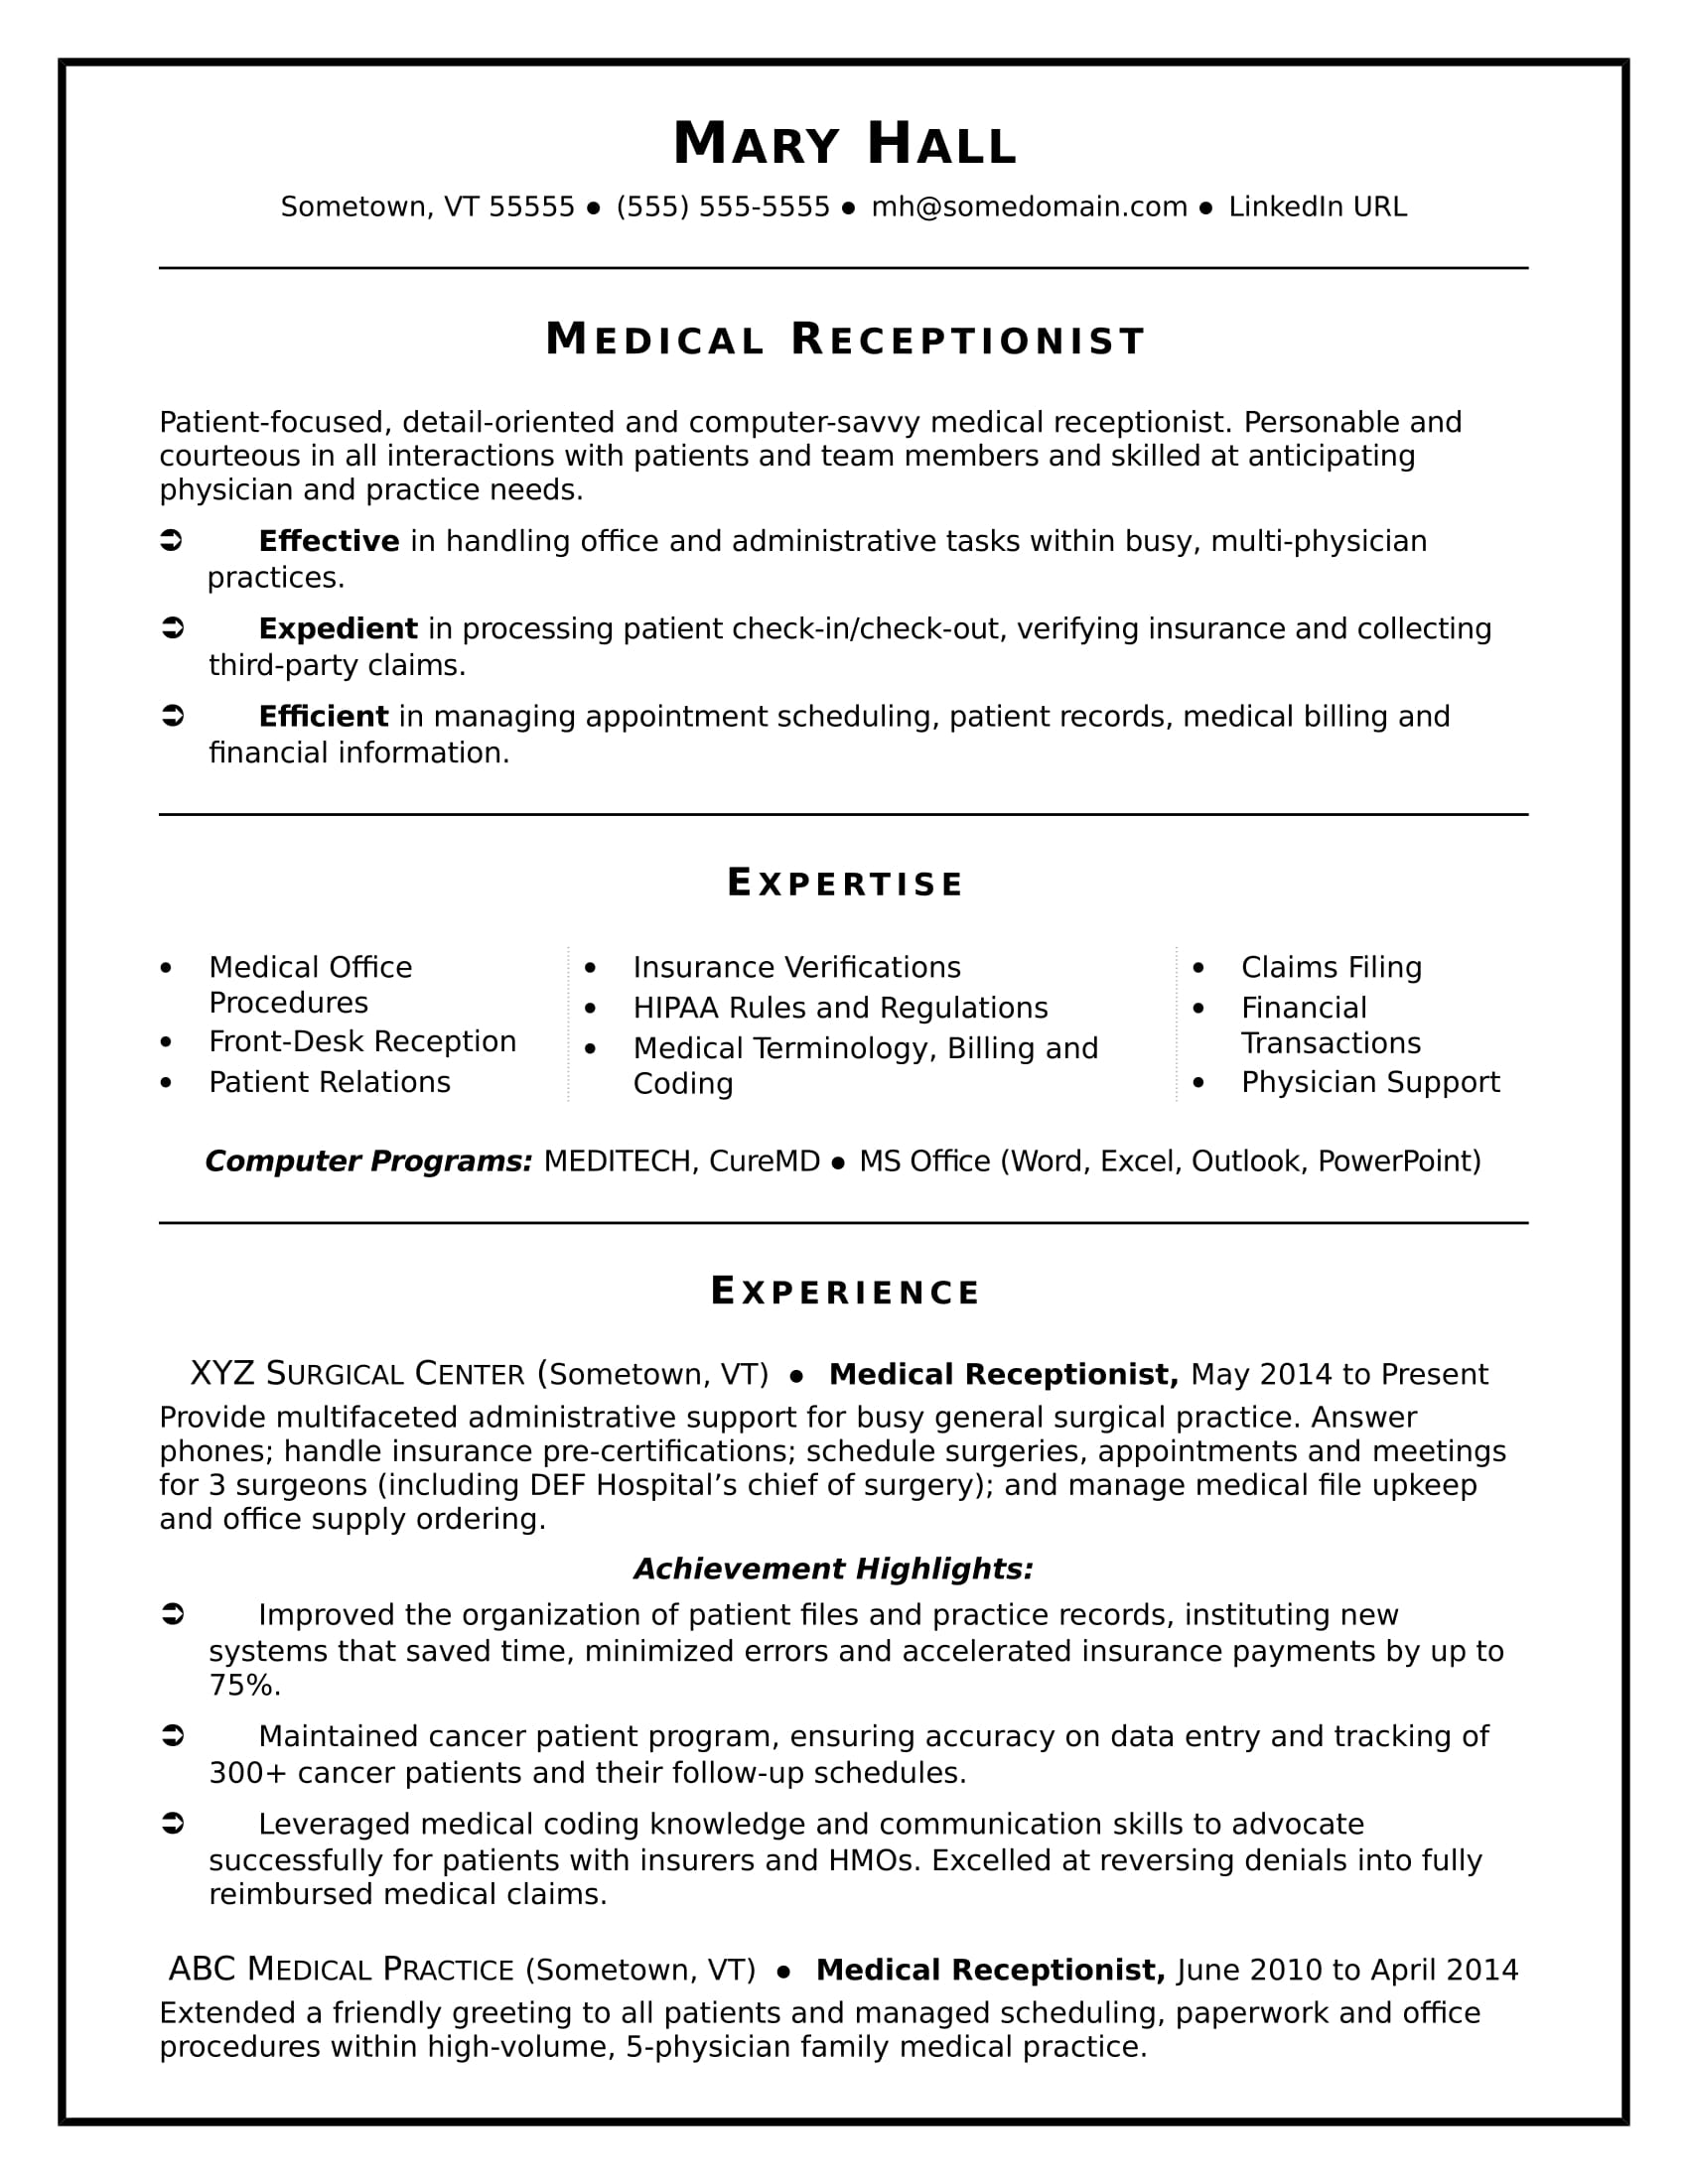 Medical Receptionist Resume Sample  Medical Billing And Coding Resume